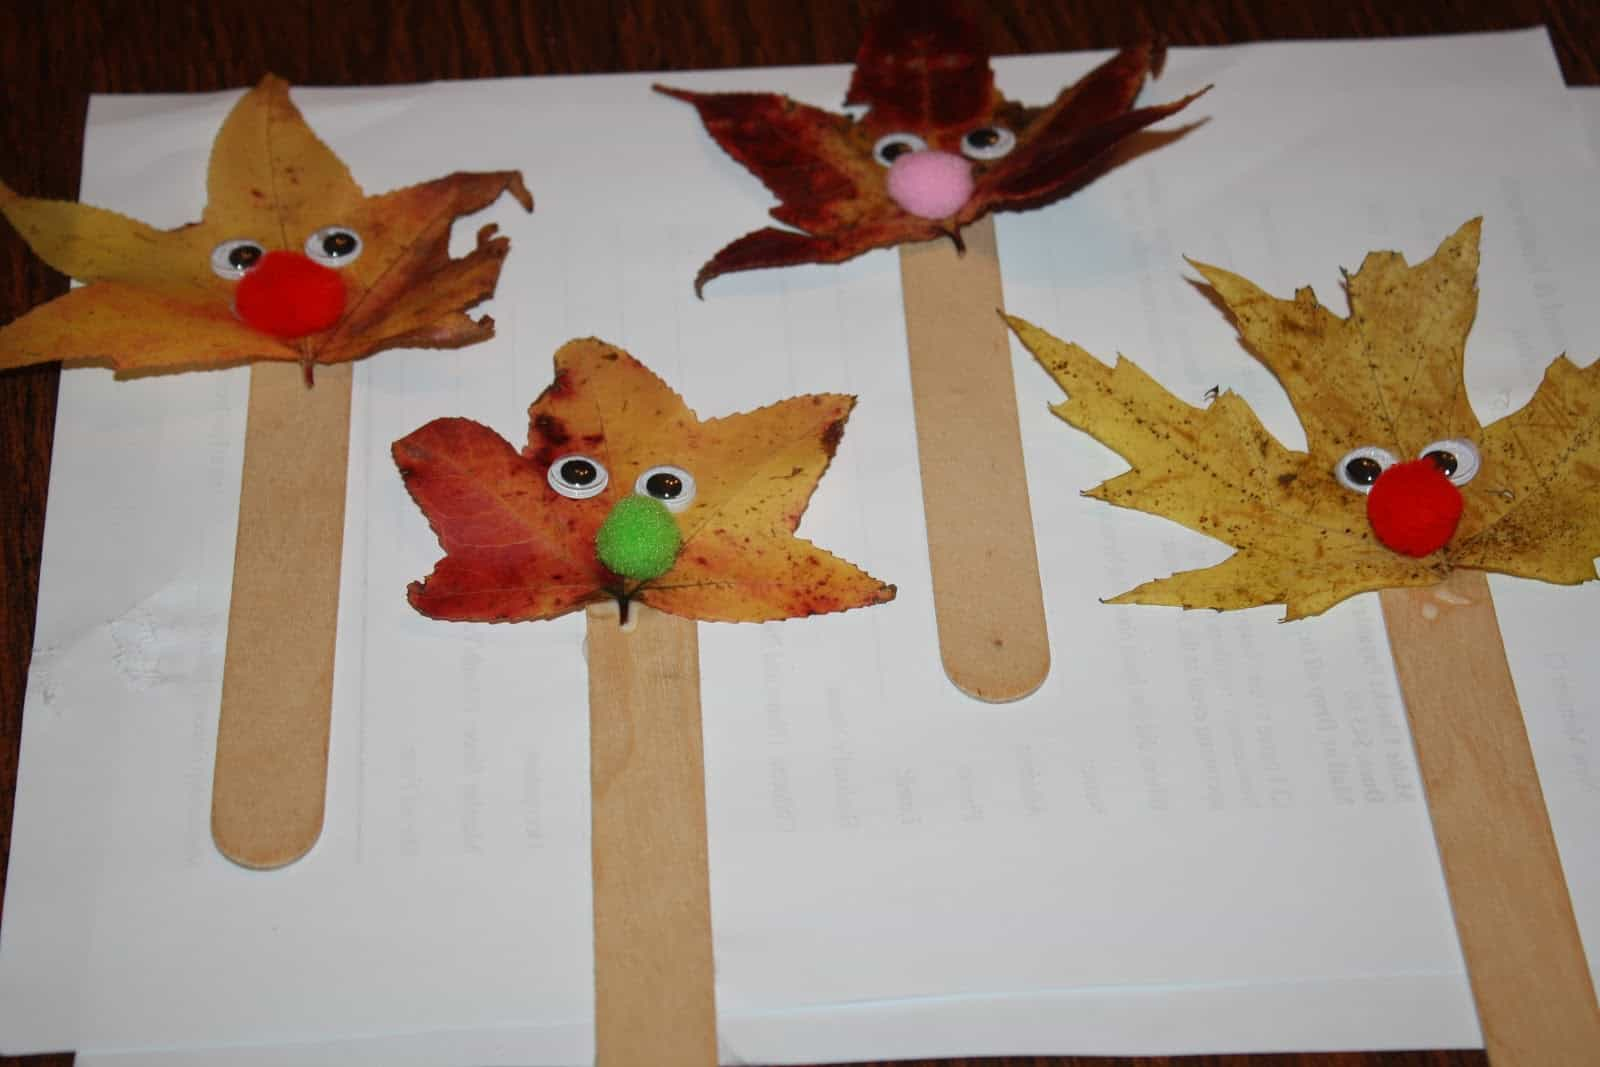 Leaf and pom pom puppets